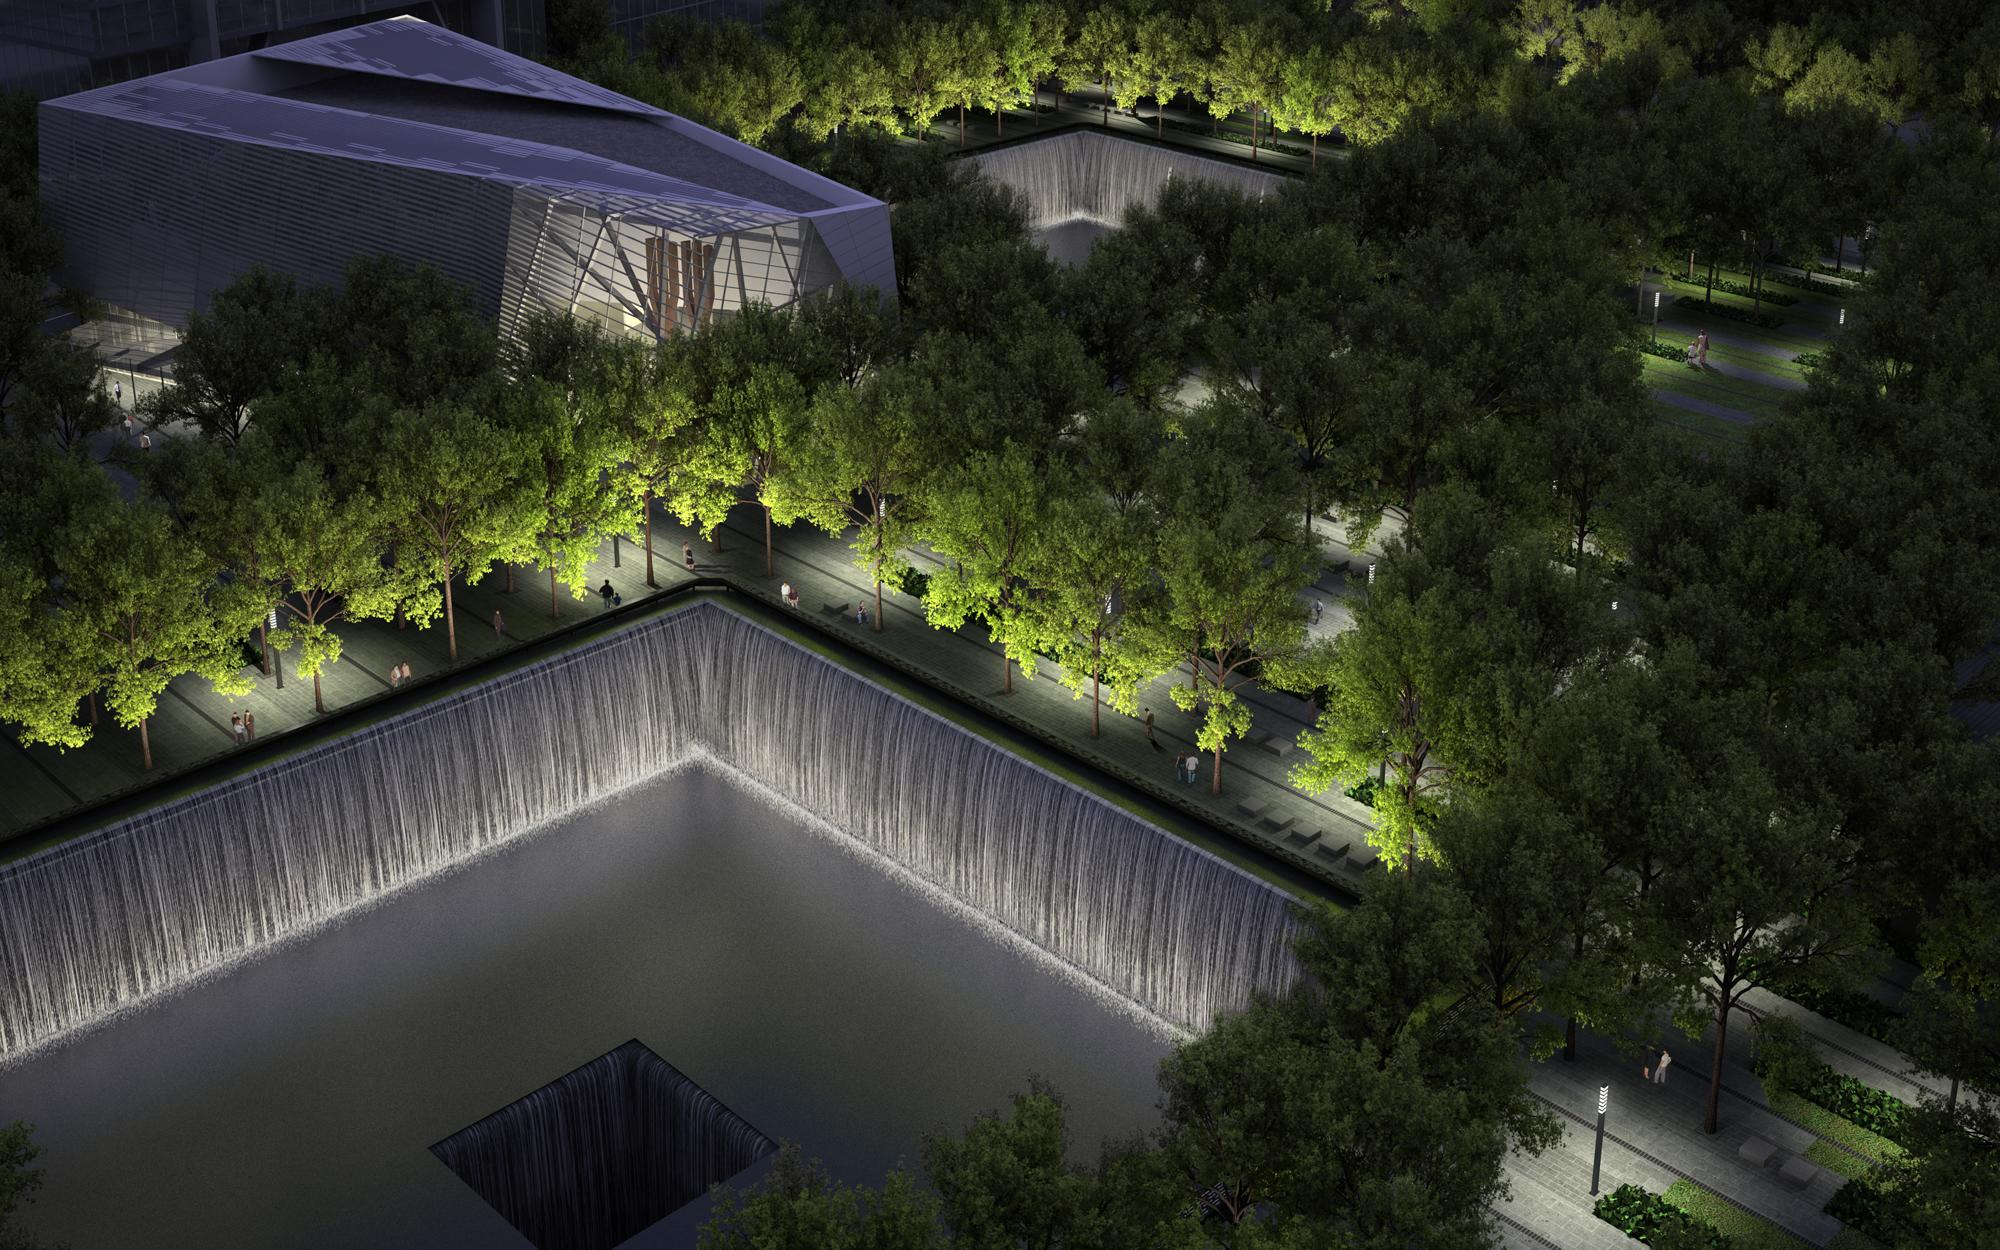 A rendering of the Memorial at night. Squared Design Lab